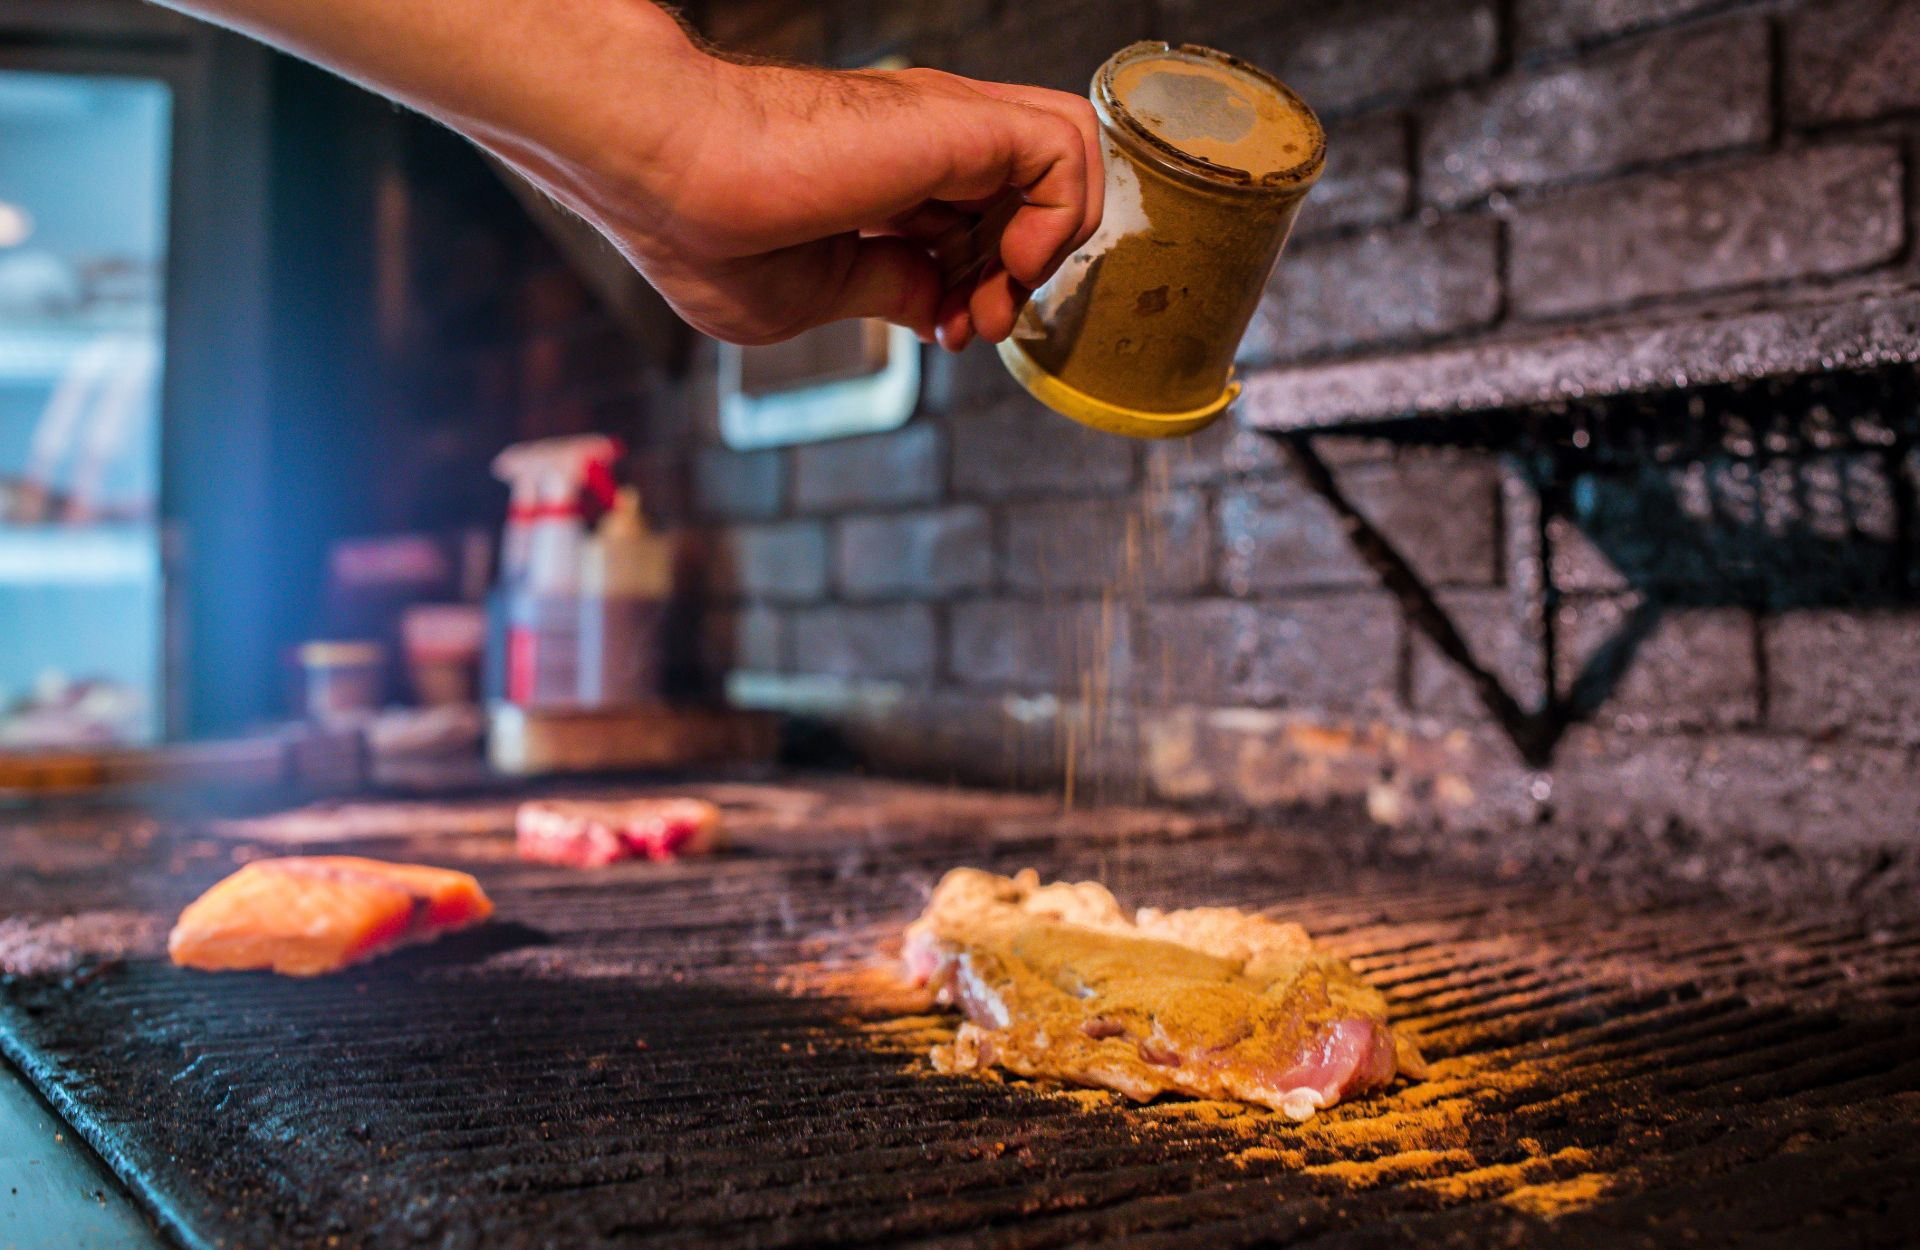 Spices being poured over a steak on a grill-top